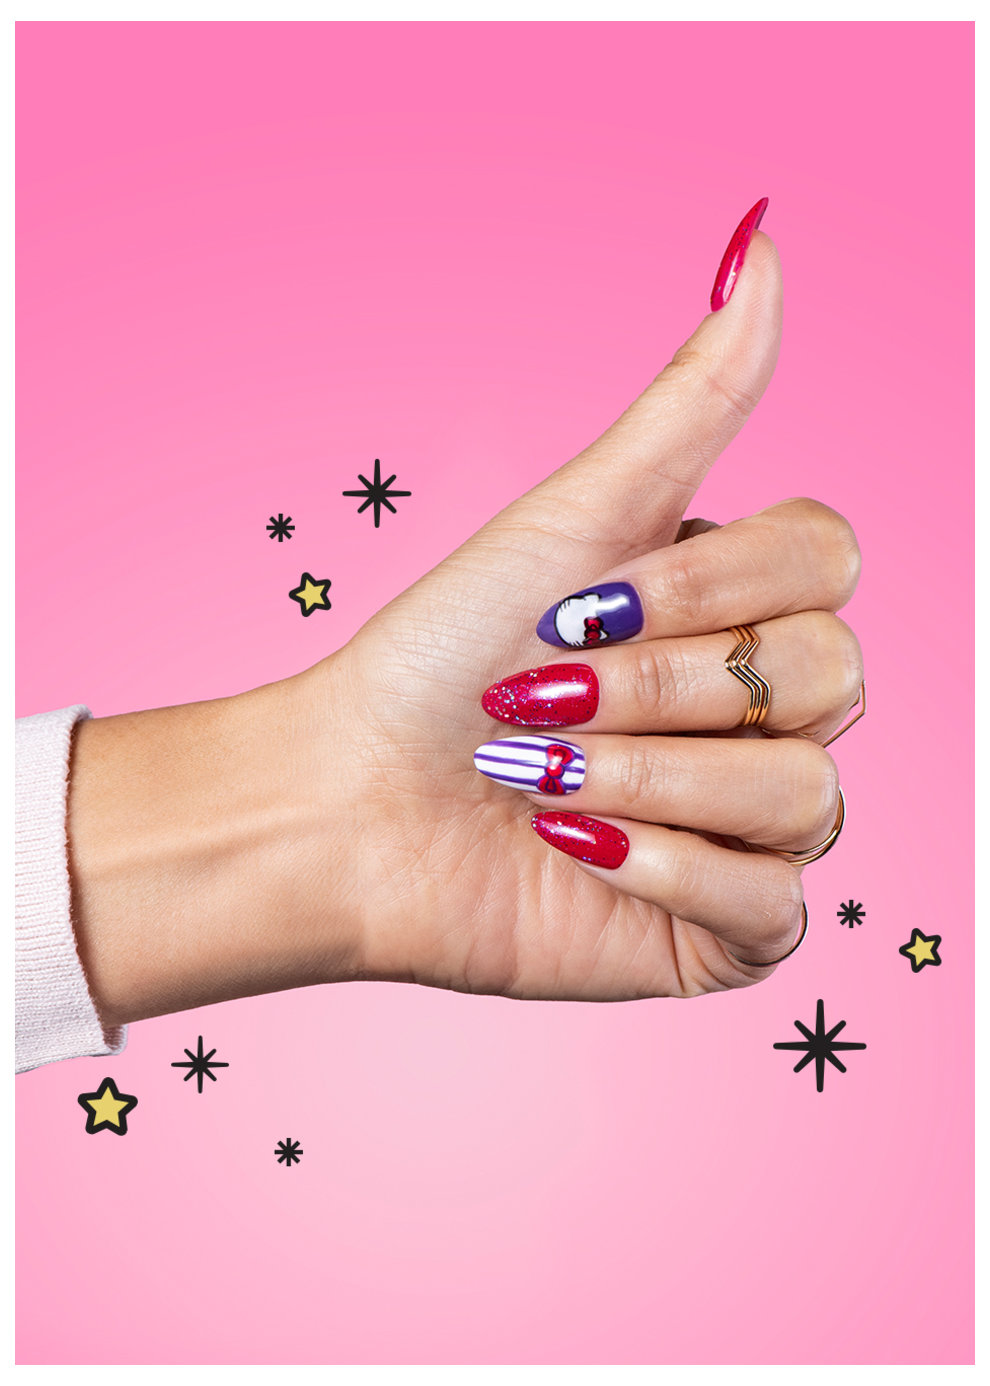 OPI x Hello Kitty Nail Art Go with the Bow